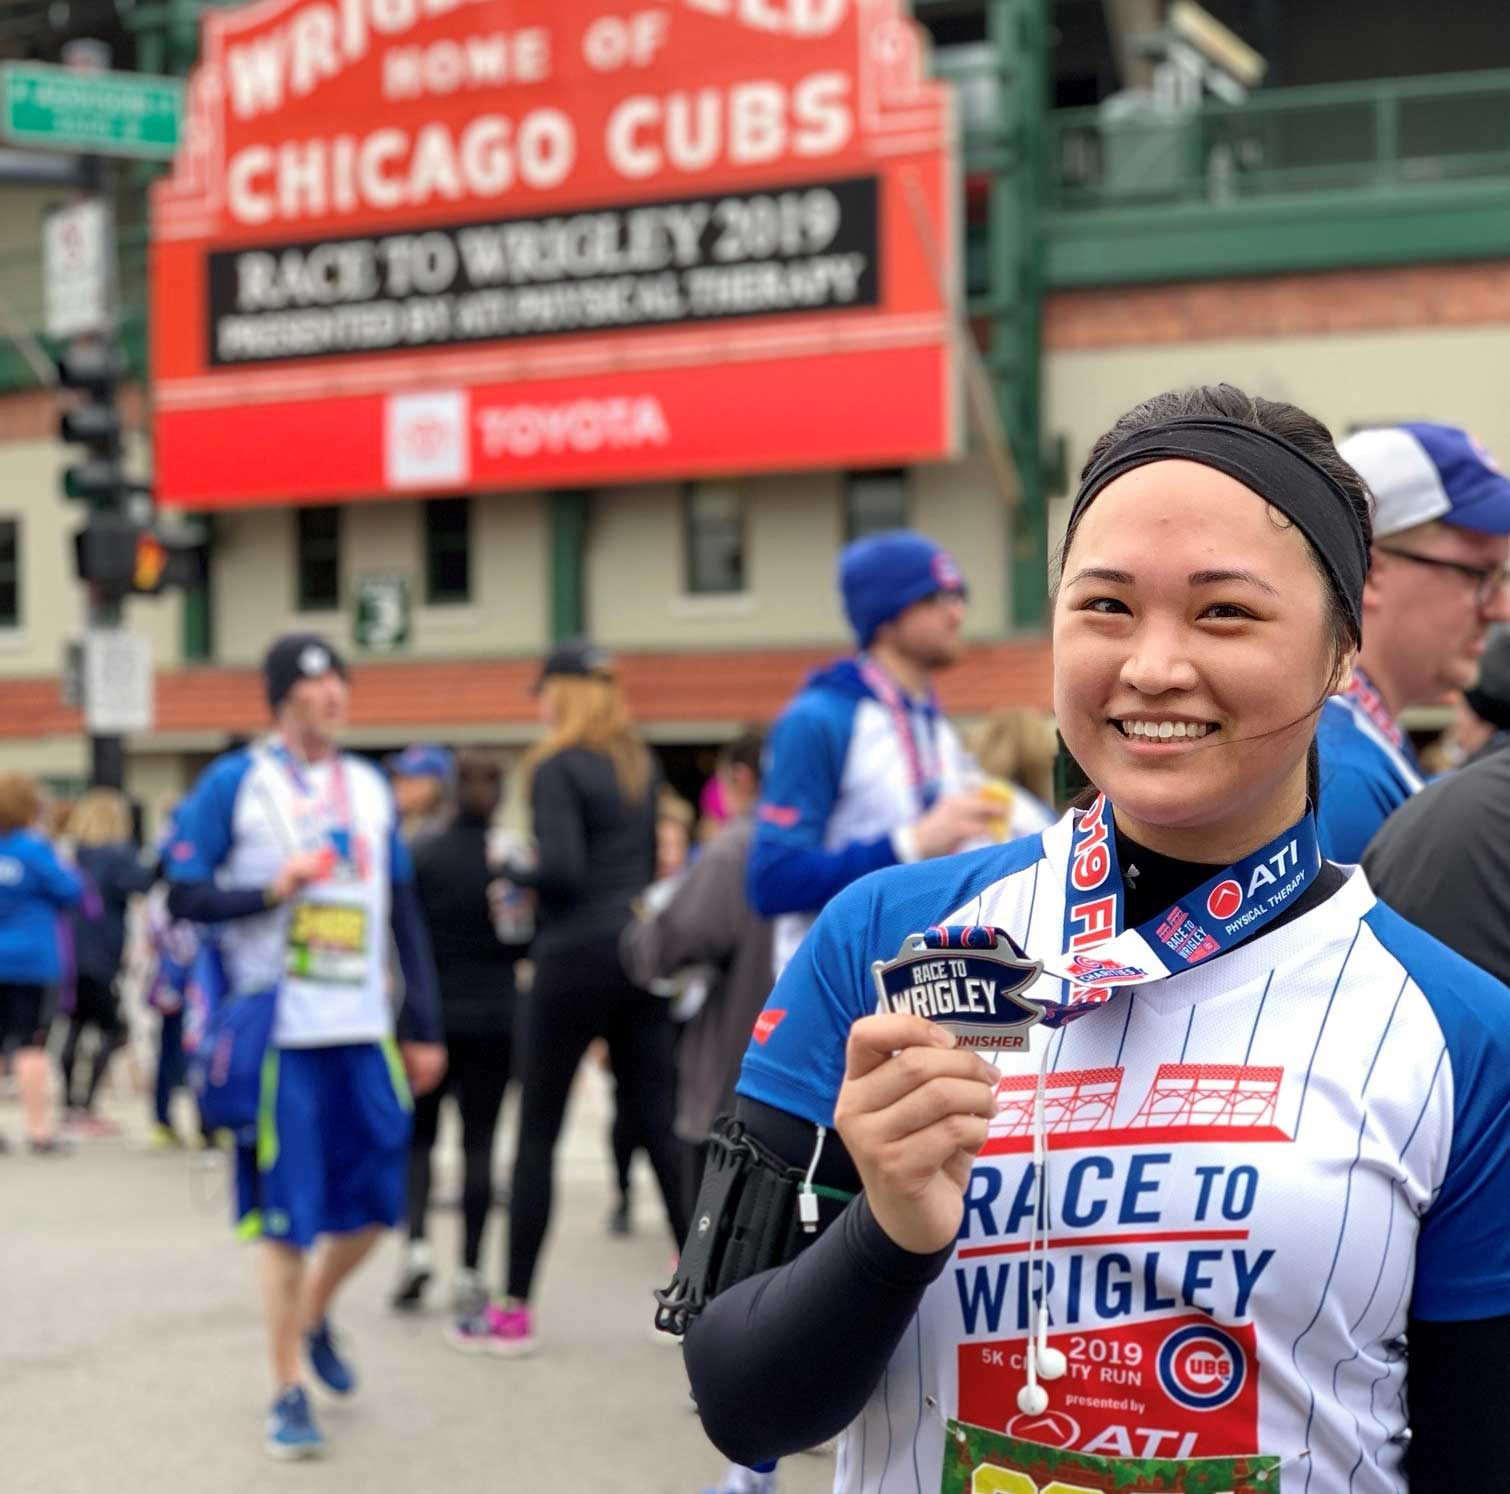 A woman posing in front of the Wrigley Field with a medal from a marathon run